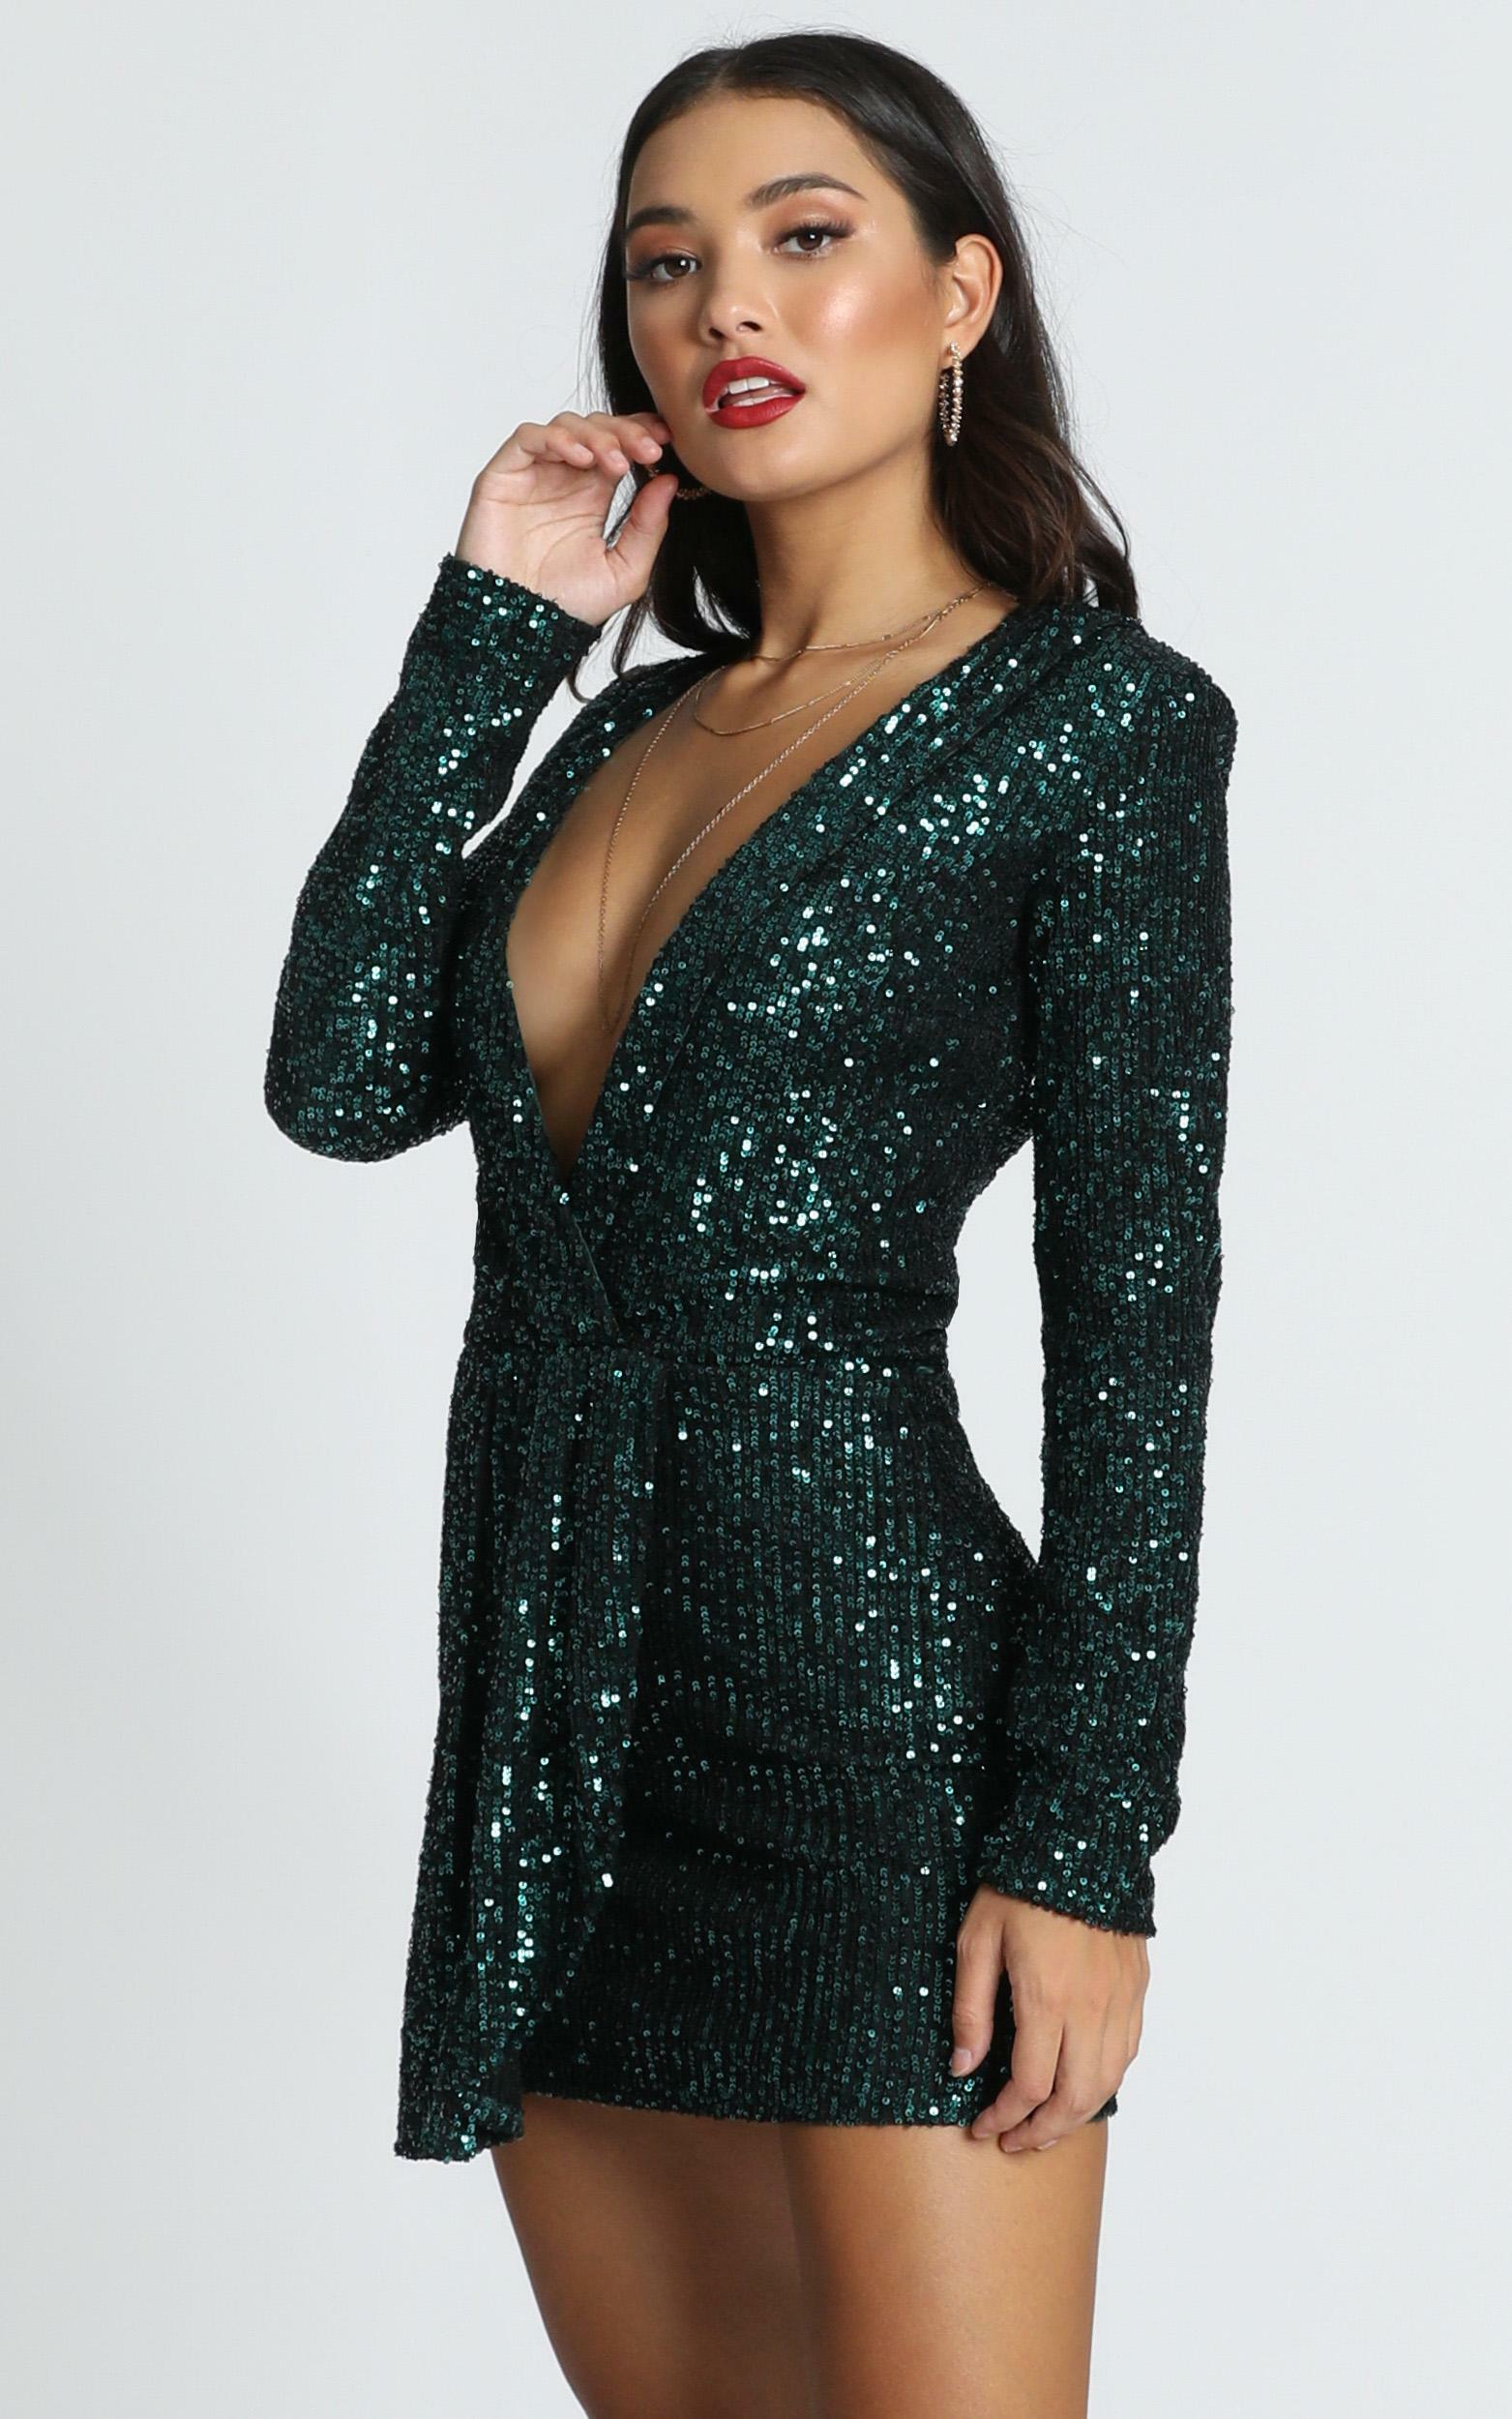 Lioness - Make The Move Dress In Emerald Green Sequin - 16 (XXL), Green, hi-res image number null